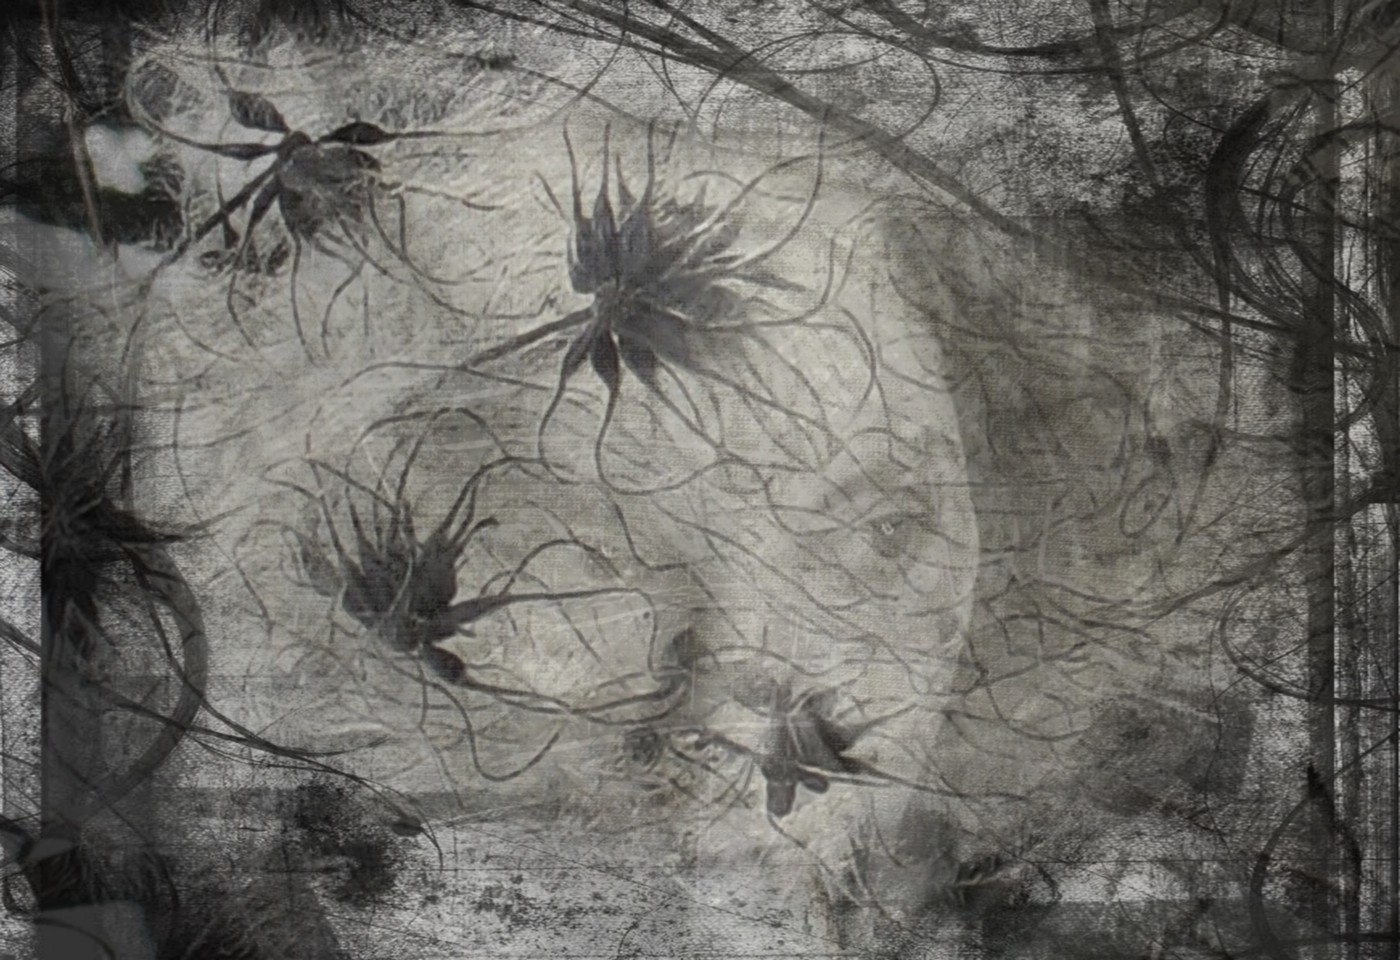 Composite image in black and white includes a photo of a woman's face, fuzzy flower seeds and filagree designs.